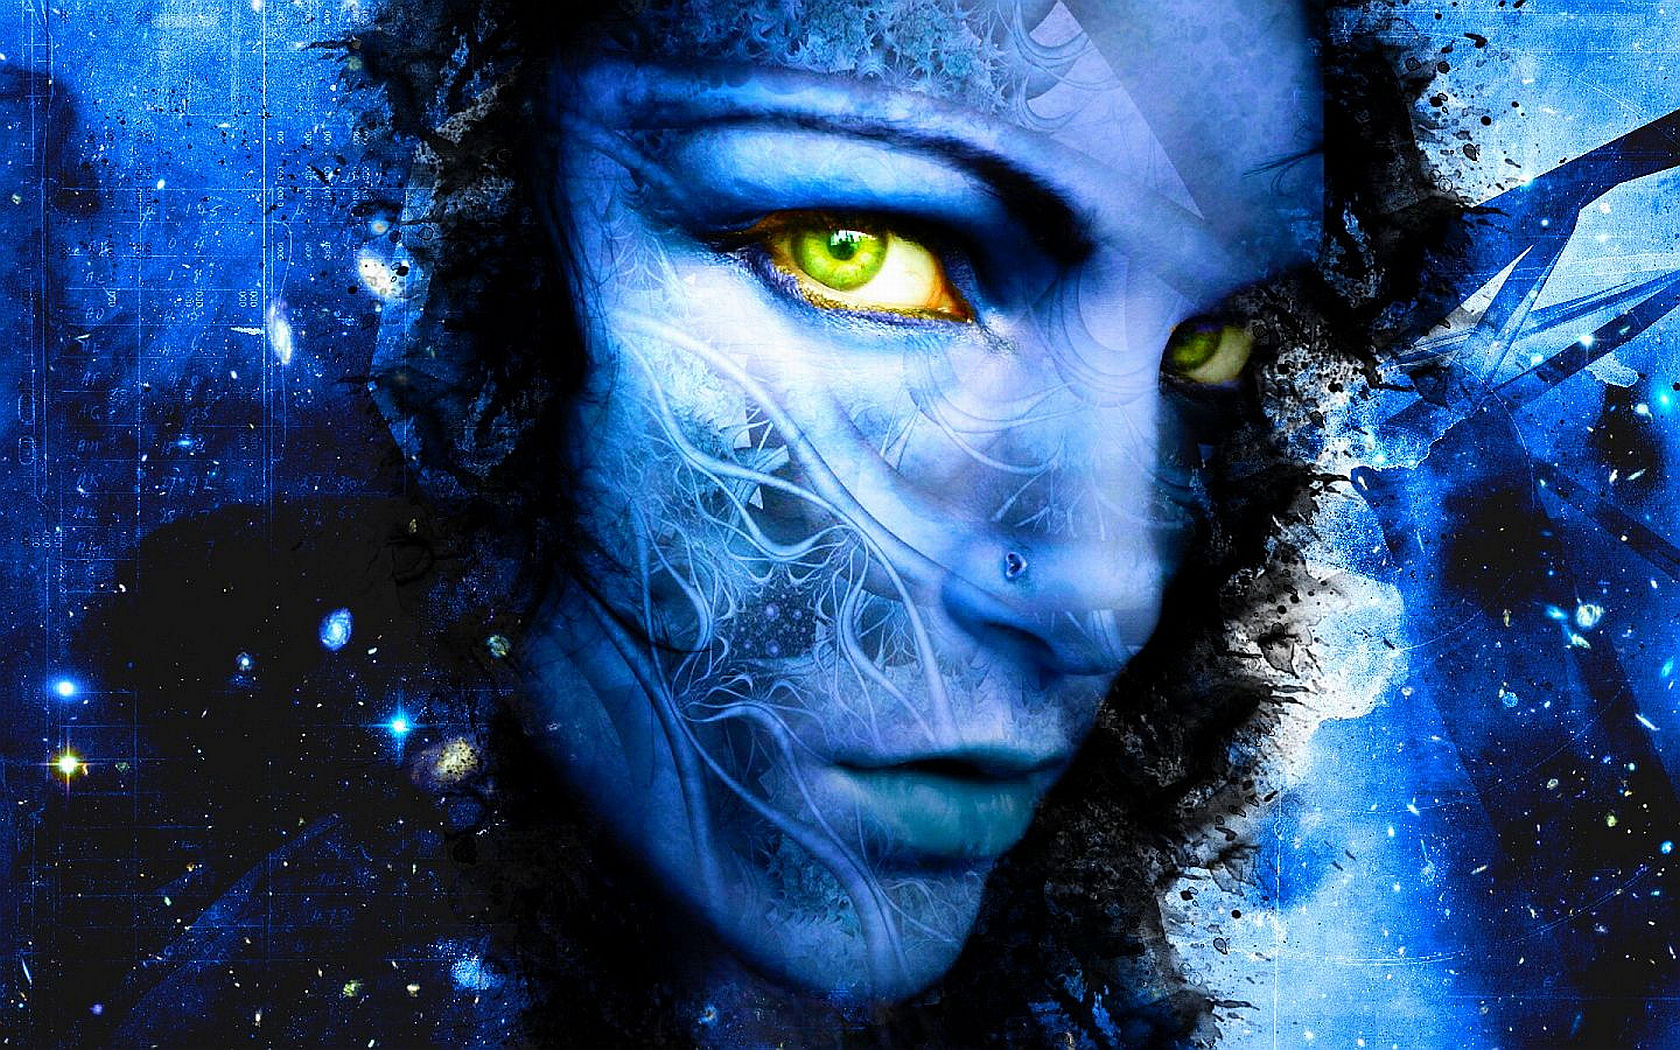 Artistiek - Vrouwen  Blue Eye Artistic Wallpaper